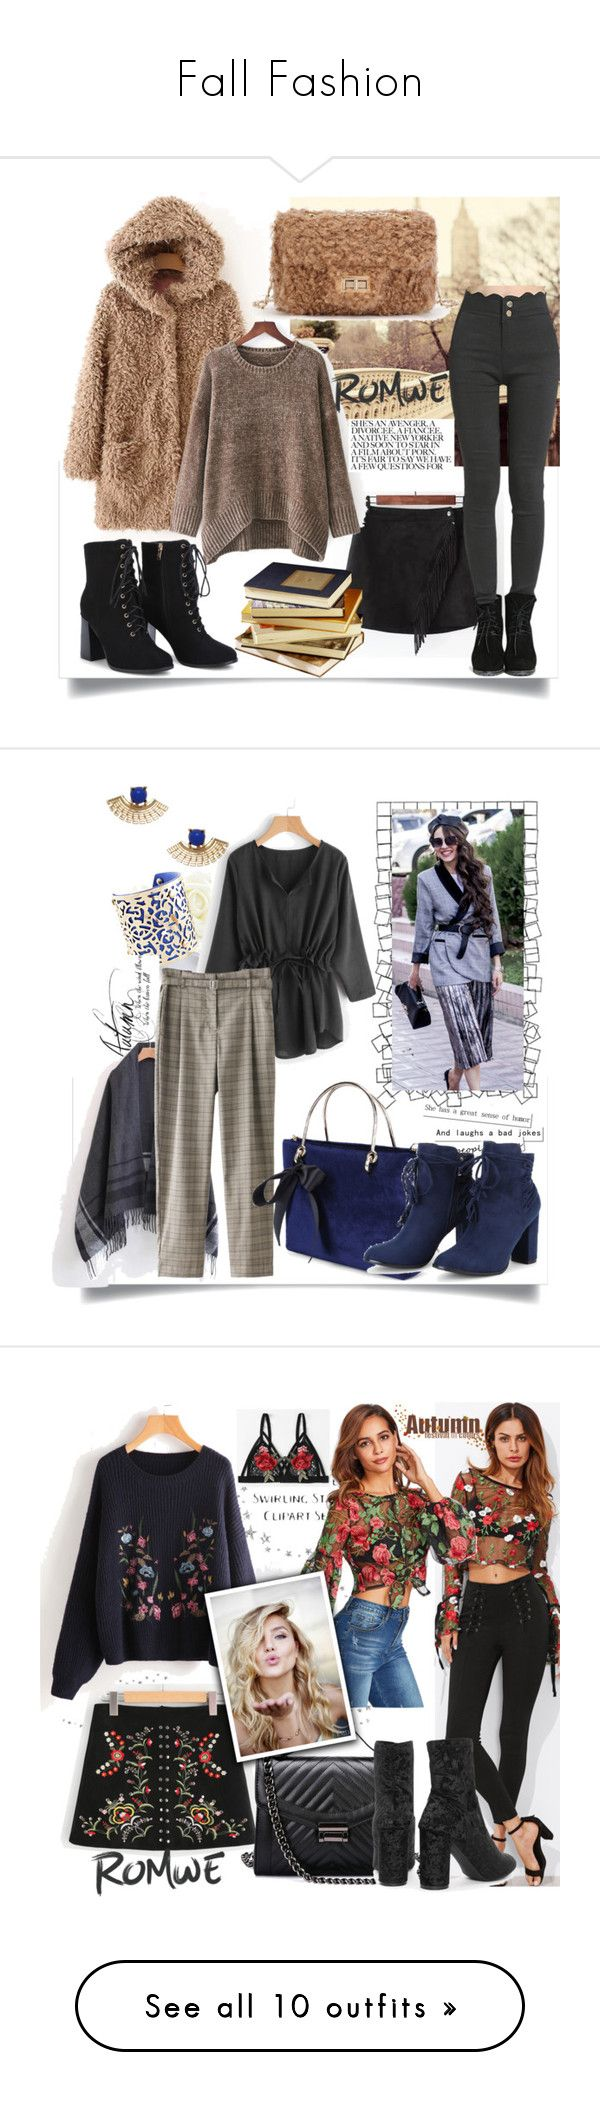 """""""Fall Fashion"""" by mery-2601 ❤ liked on Polyvore featuring modern, romwe, Trendy, onlineshopping, WithChic, Freddy and Pottery Barn"""